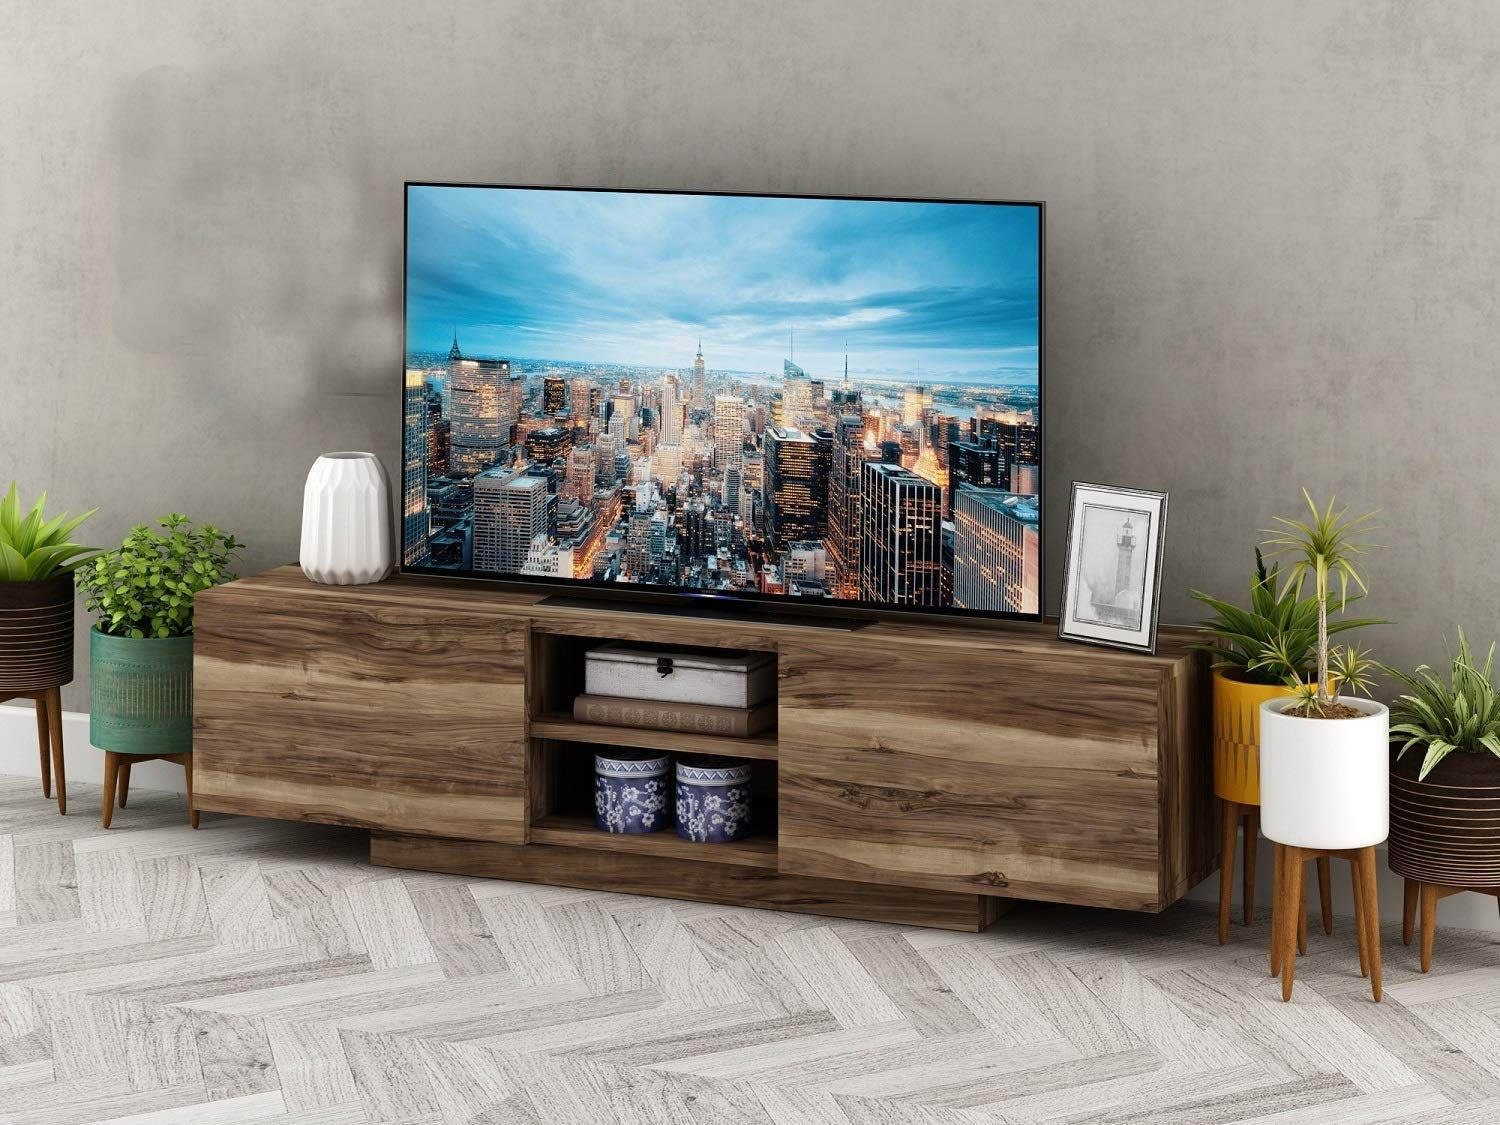 Prestige Decor Tv Stand Tv Stands For Flat Screens Tv Stand For 55 Inch Tv Compatible With 70 65 60 55 50 4 Tv Decor Flat Screen Tv Stand Modern Tv Stand Decor Tv table for 55 inch tv